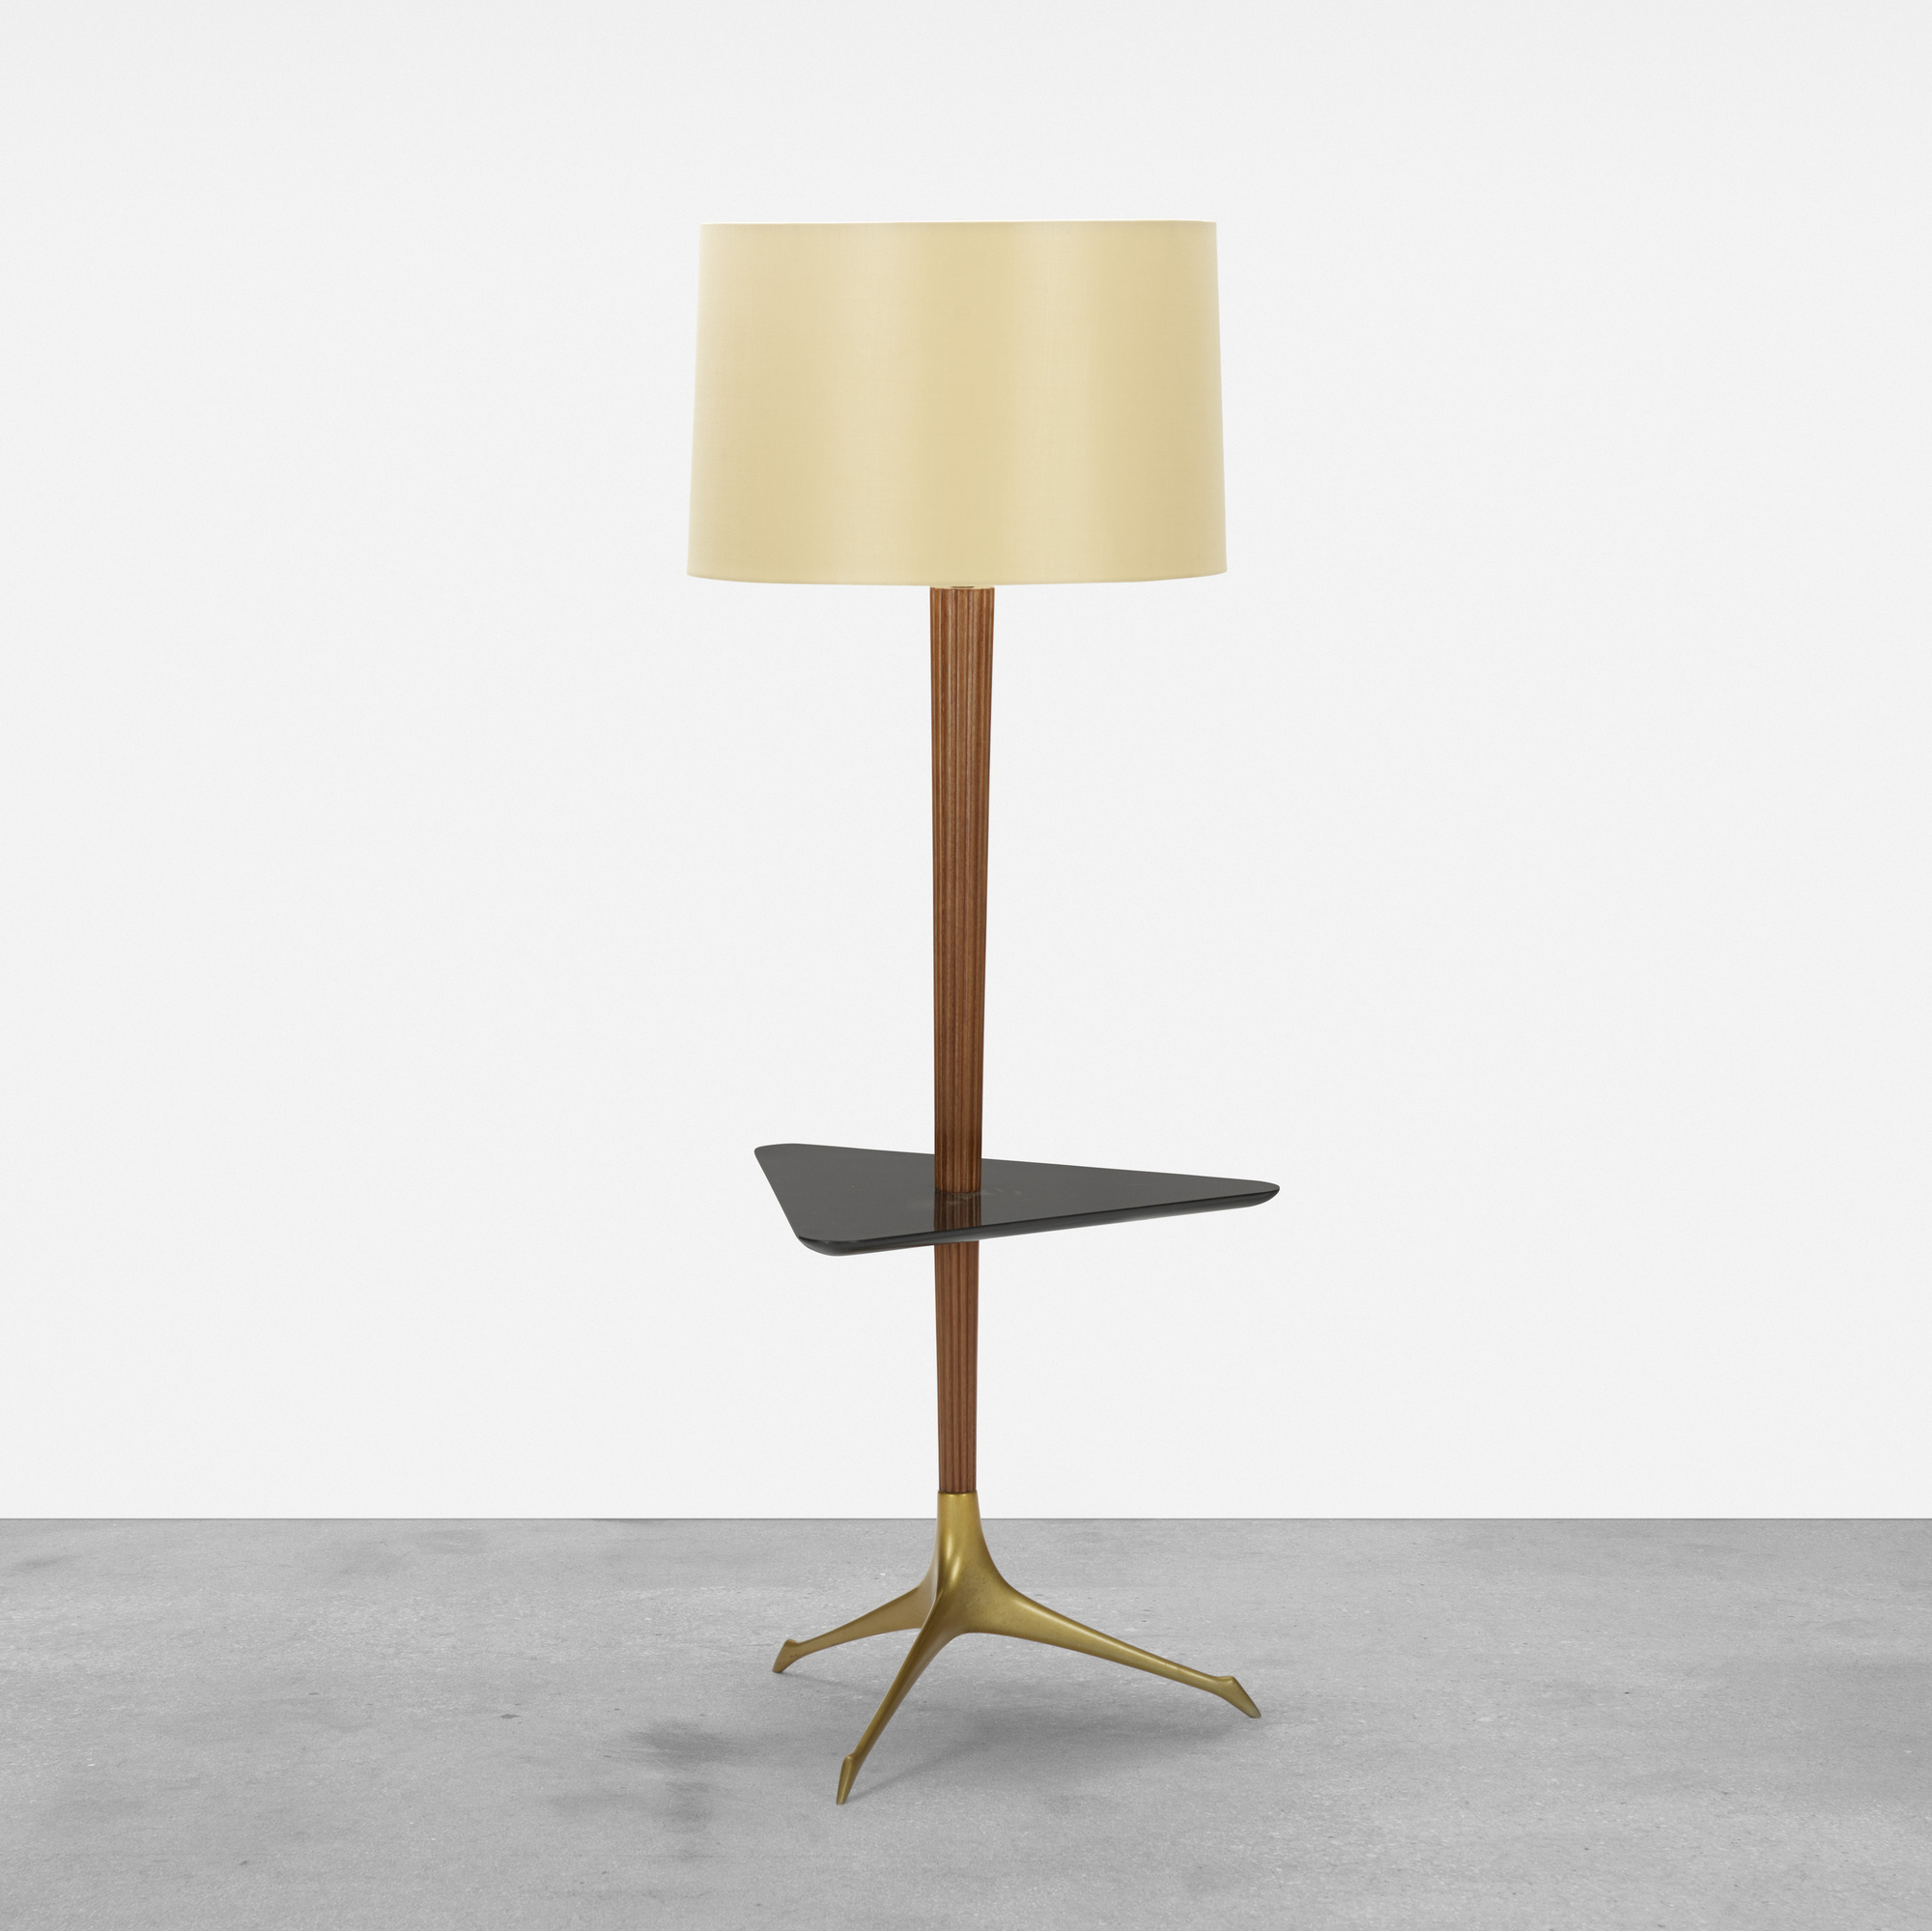 411: Vladimir Kagan / Tri-symmetric lamp table (1 of 3)